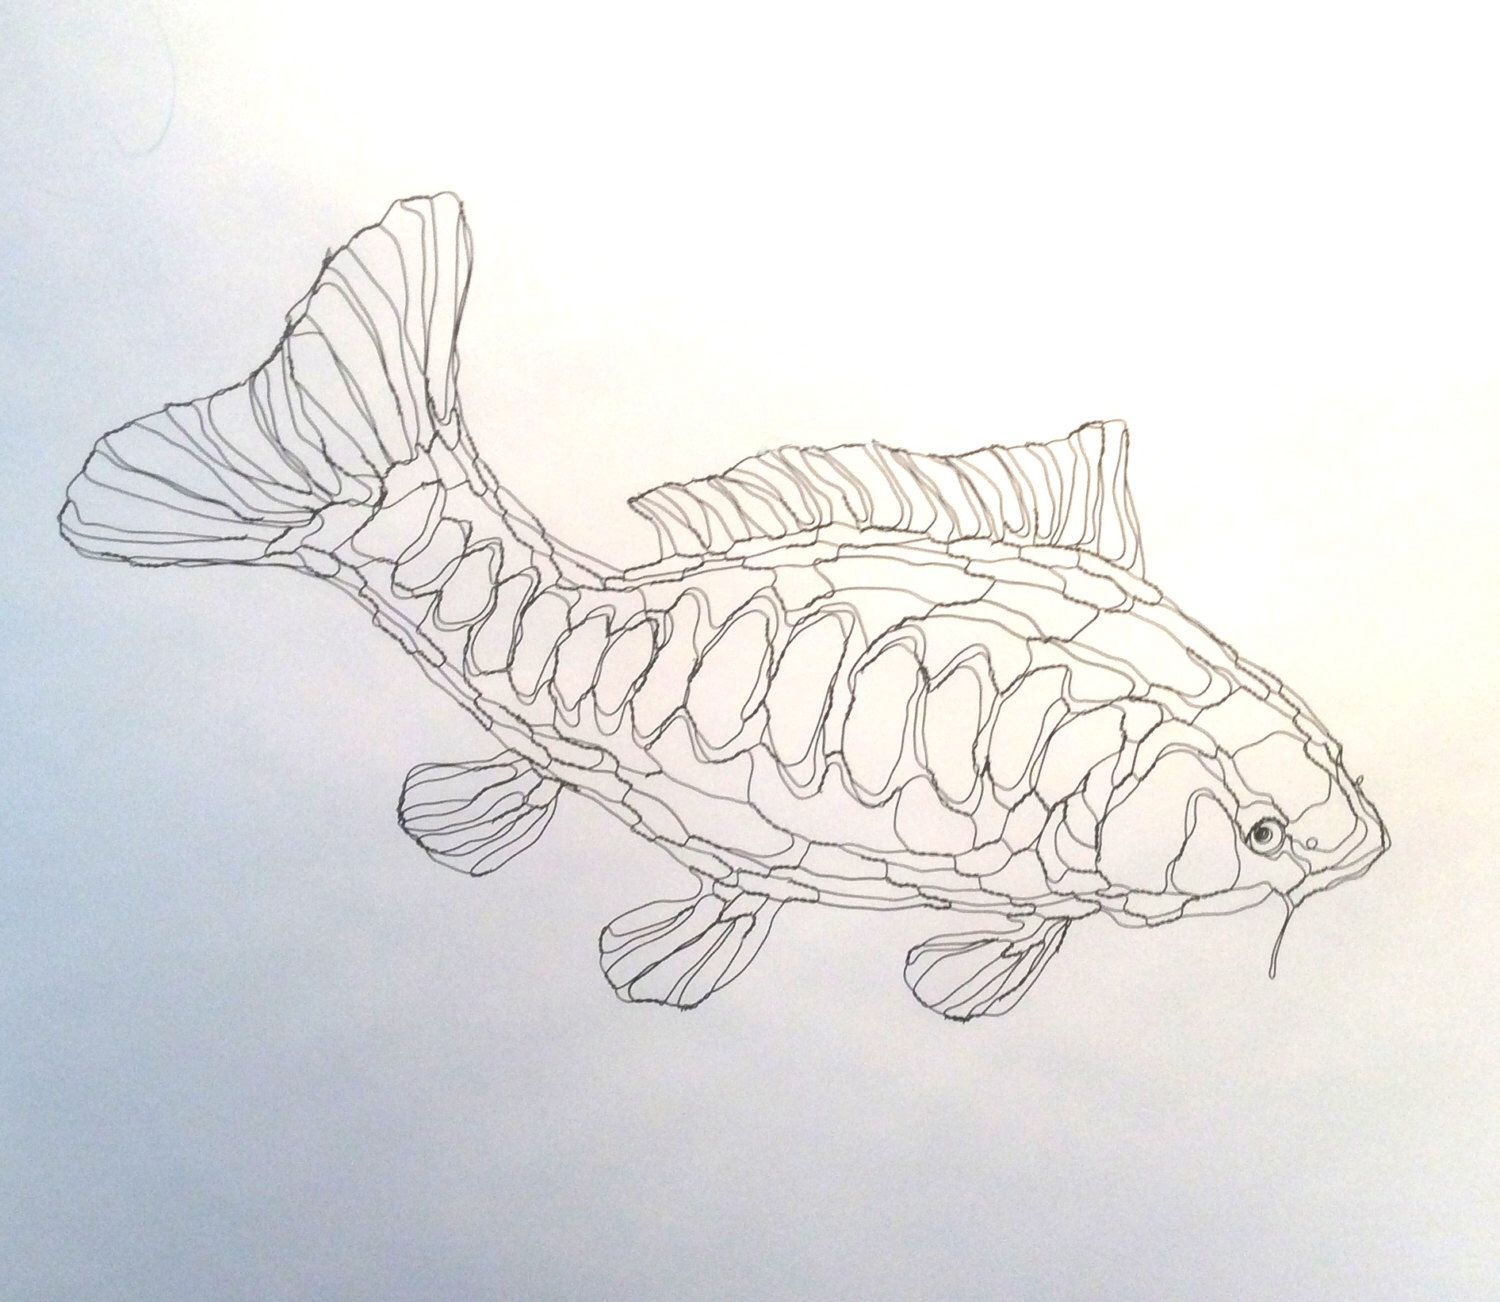 Wire Sculpture 2D Koi Carp (Pond Fish): Wire Wall Art by Elizabeth Berrien, internationally acclaimed wire sculp by WireZoo on Etsy https://www.etsy.com/listing/219457546/wire-sculpture-2d-koi-carp-pond-fish